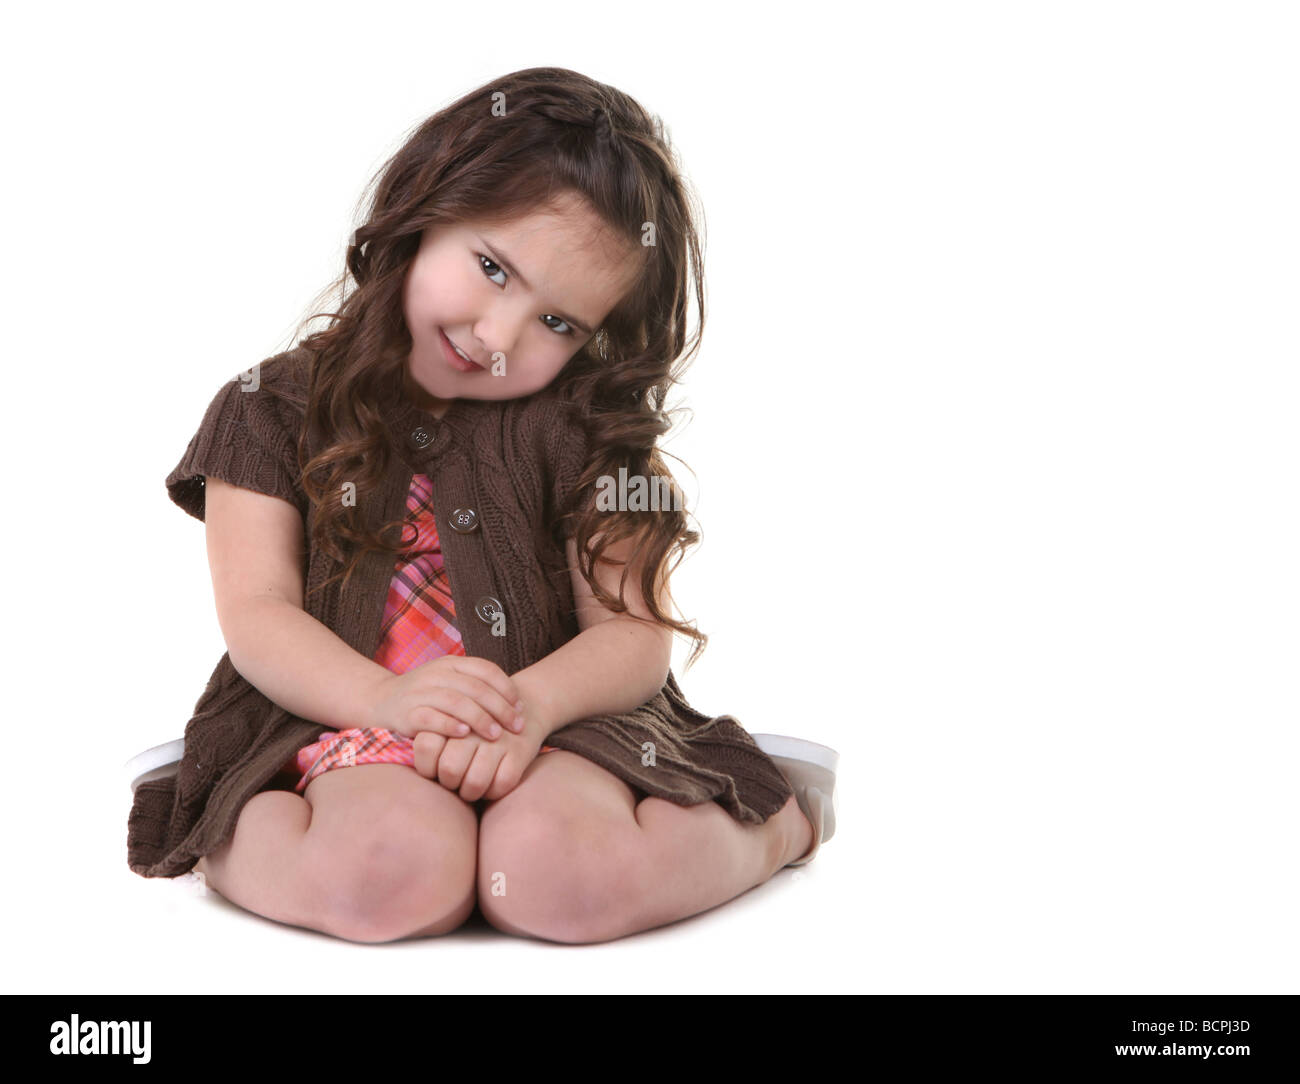 Cute Brown Haired Young Girl Tilting Her Head Sideways - Stock Image